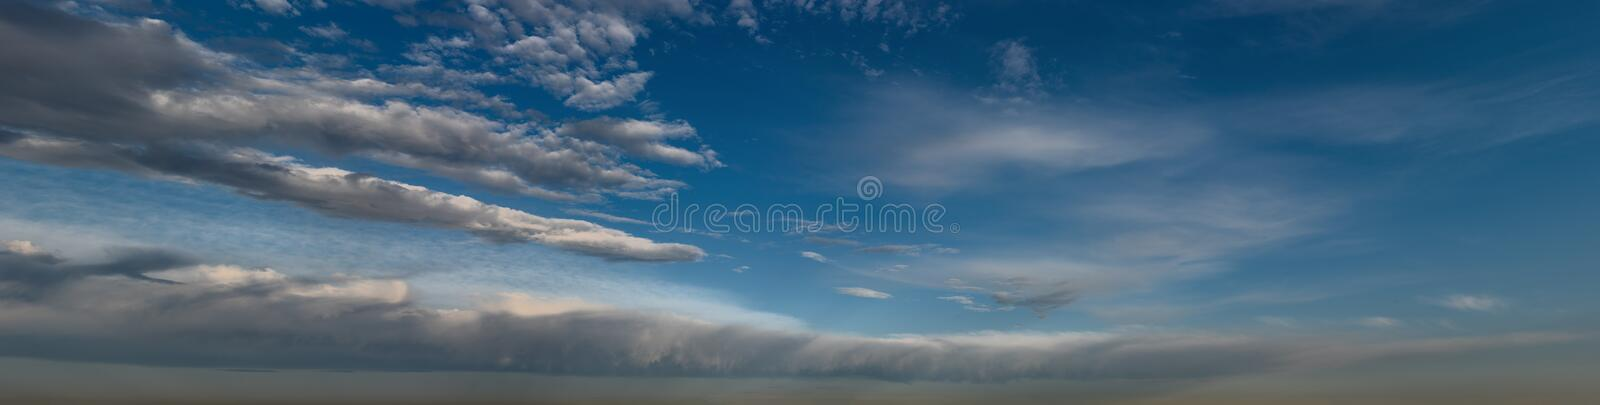 Silver clouds panorama. Silver clouds mass on the horizon below the blue sky in a sweeping panoramic view stock image